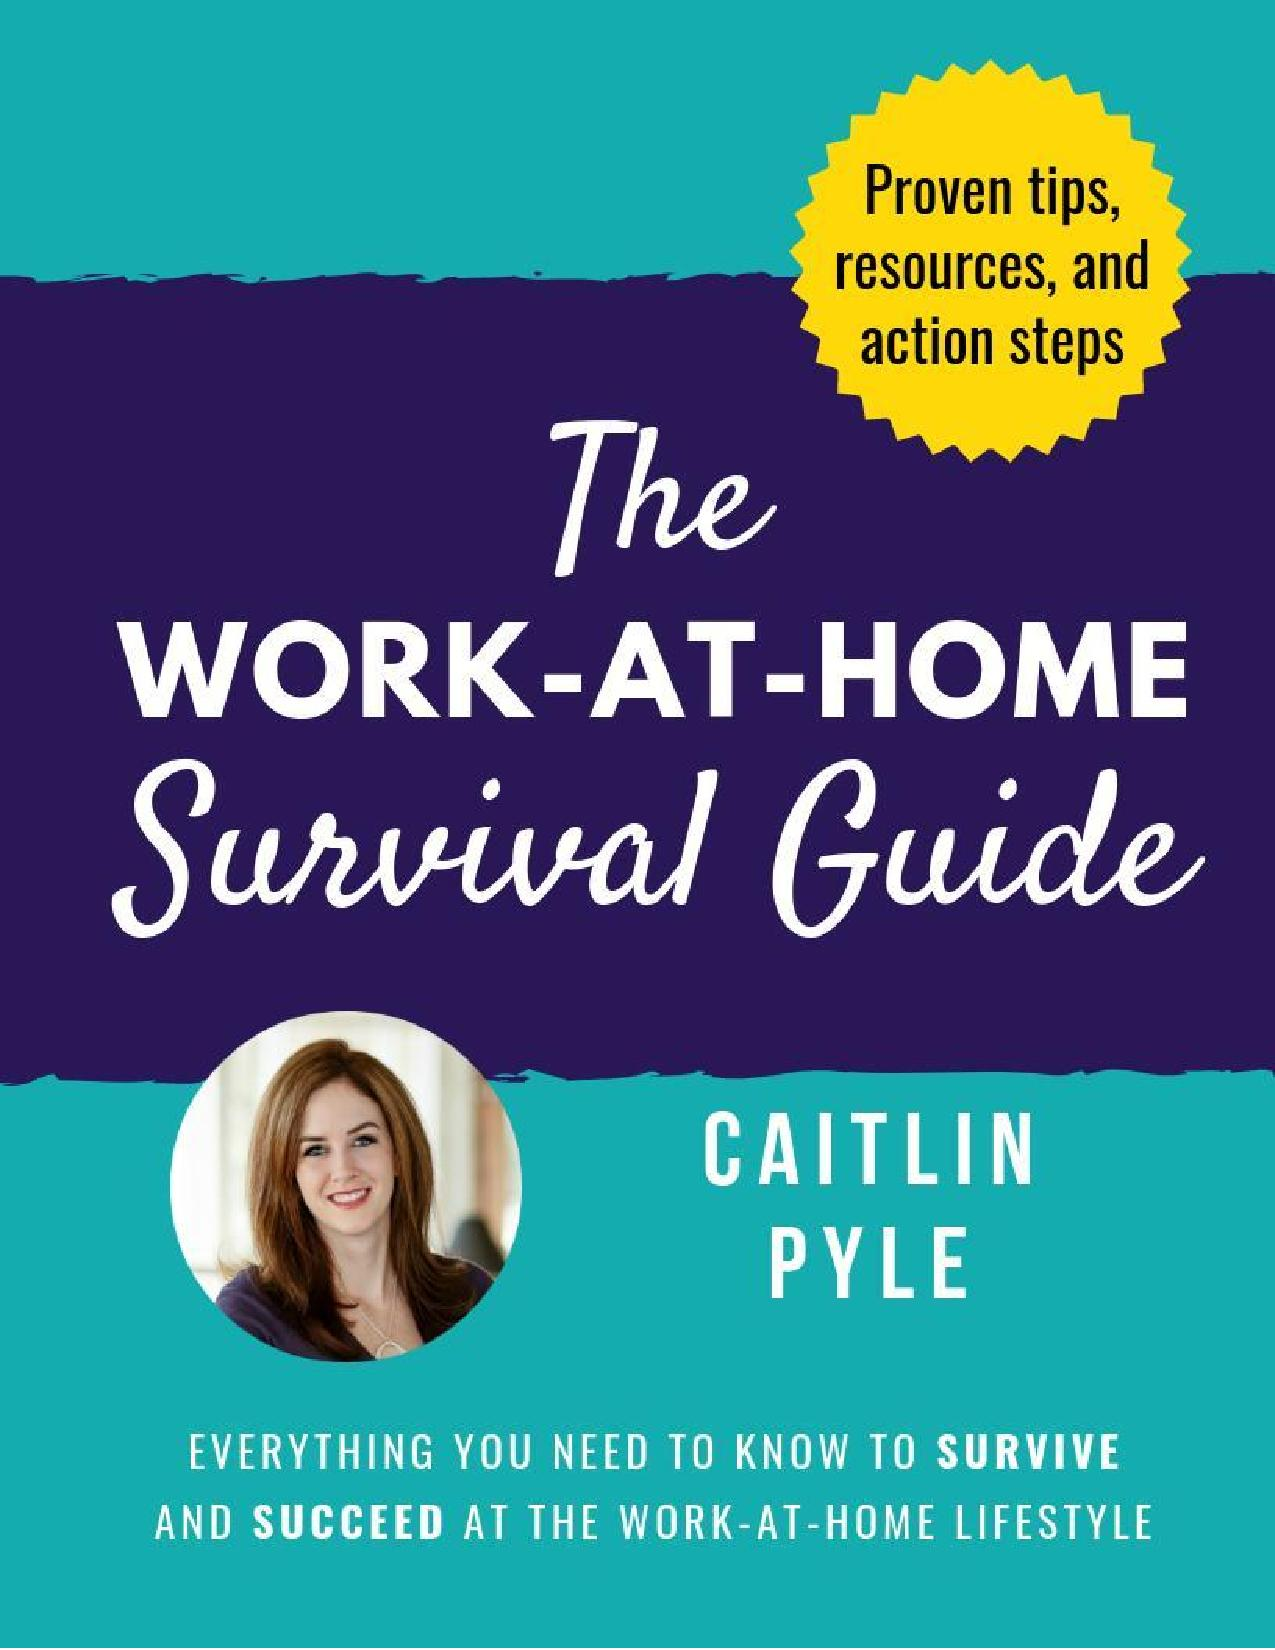 The Work-at-Home Survival Guide